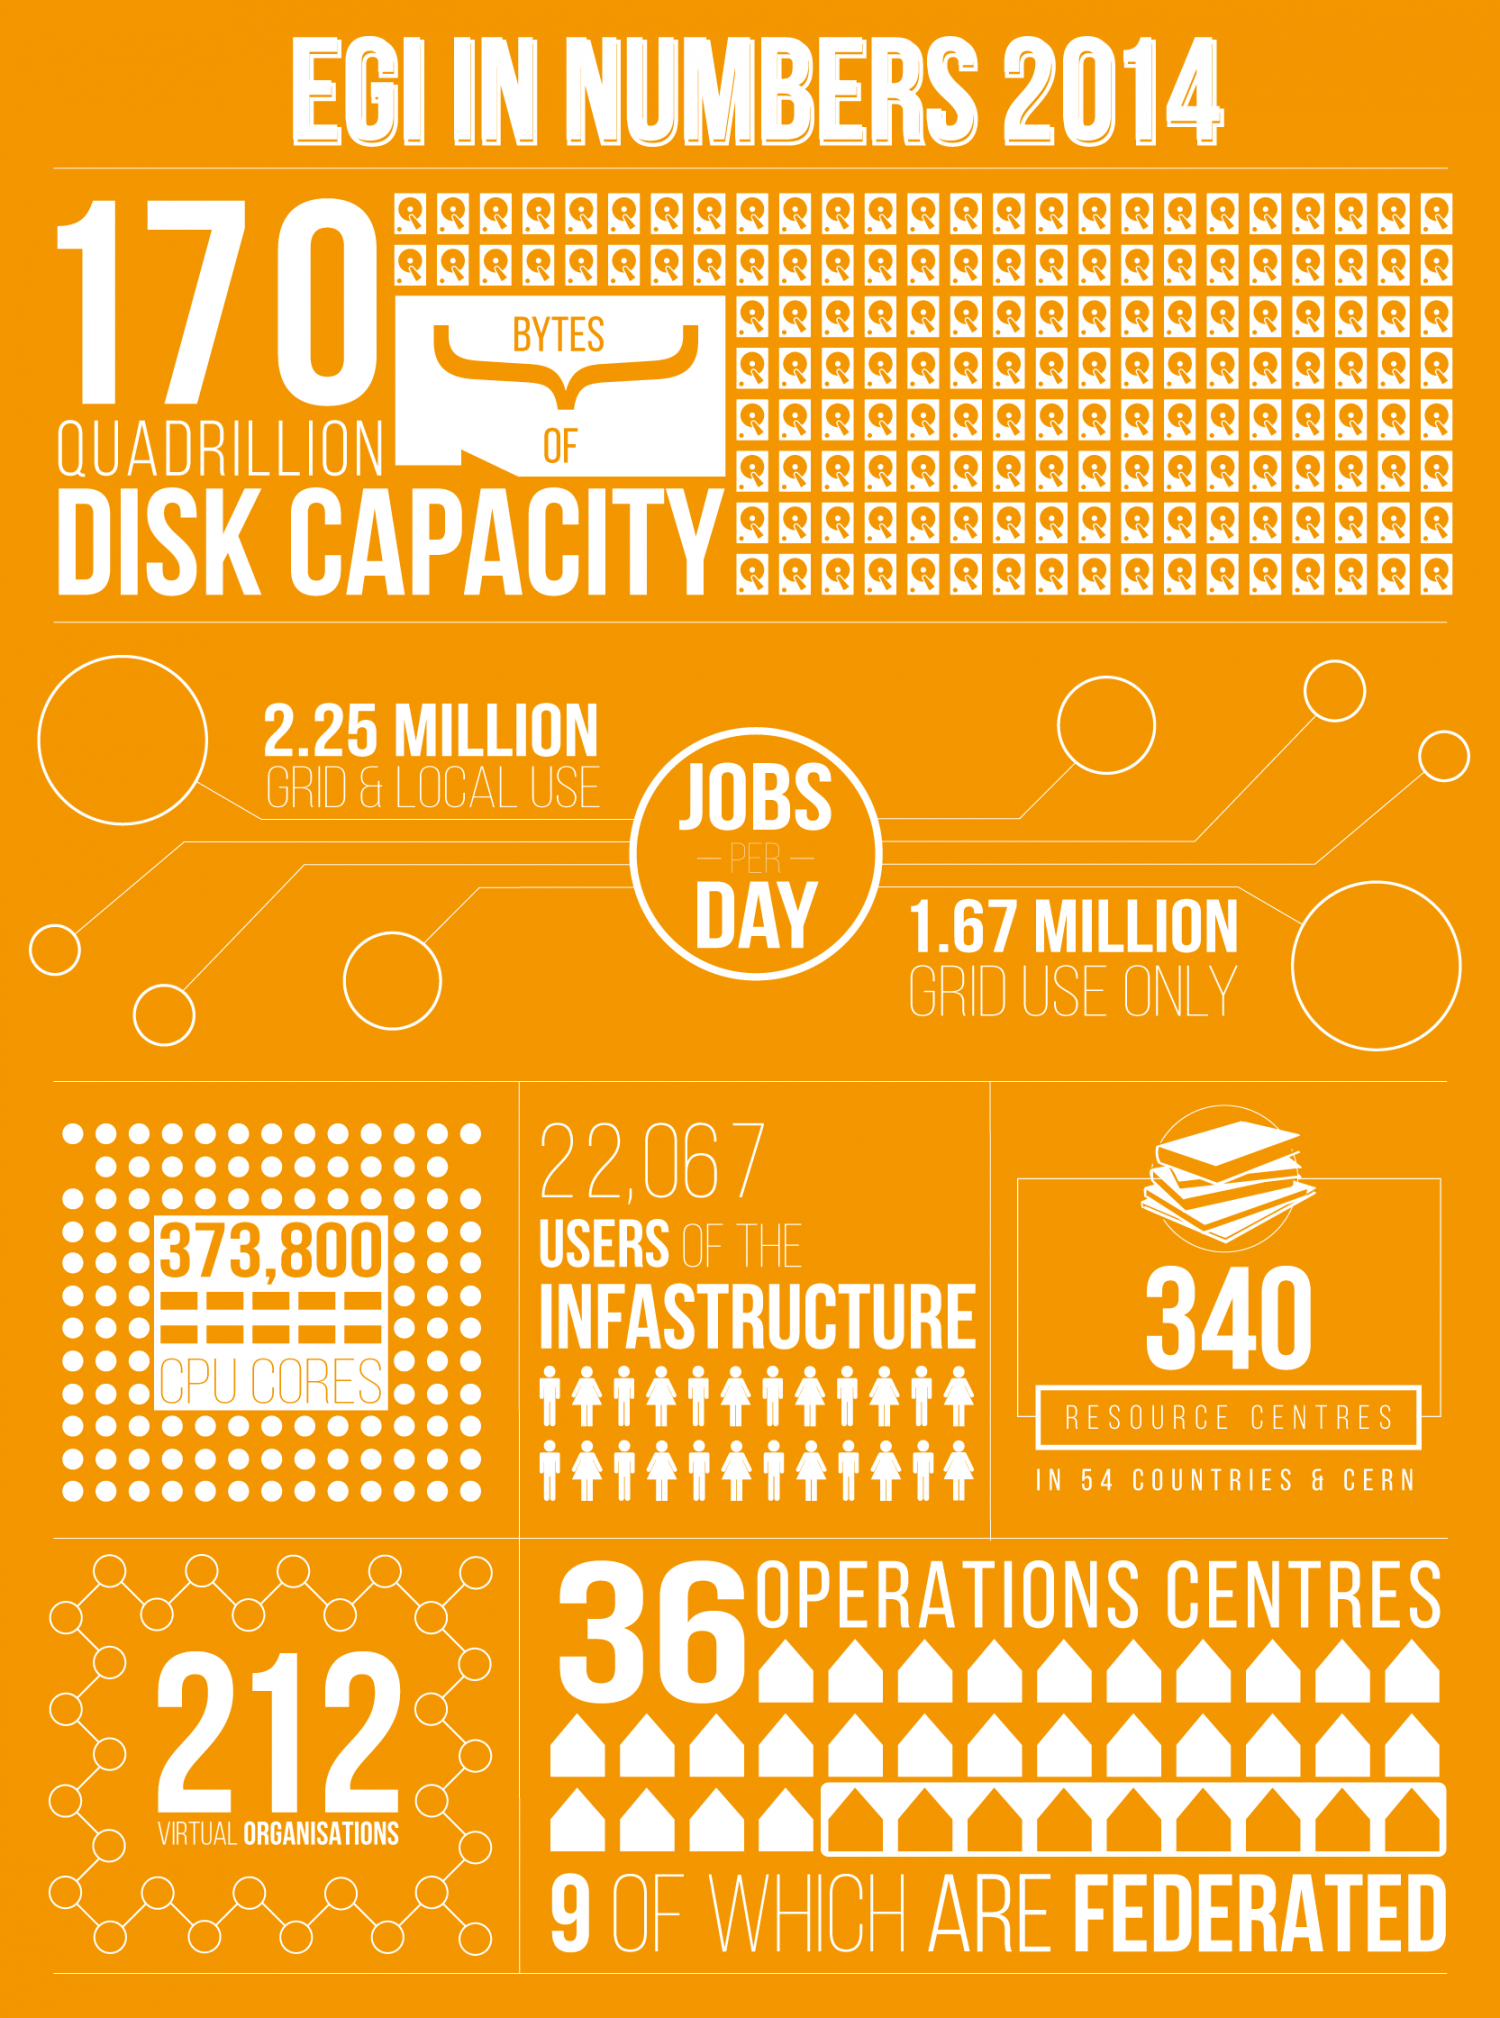 EGI In Numbers 2014 Infographic